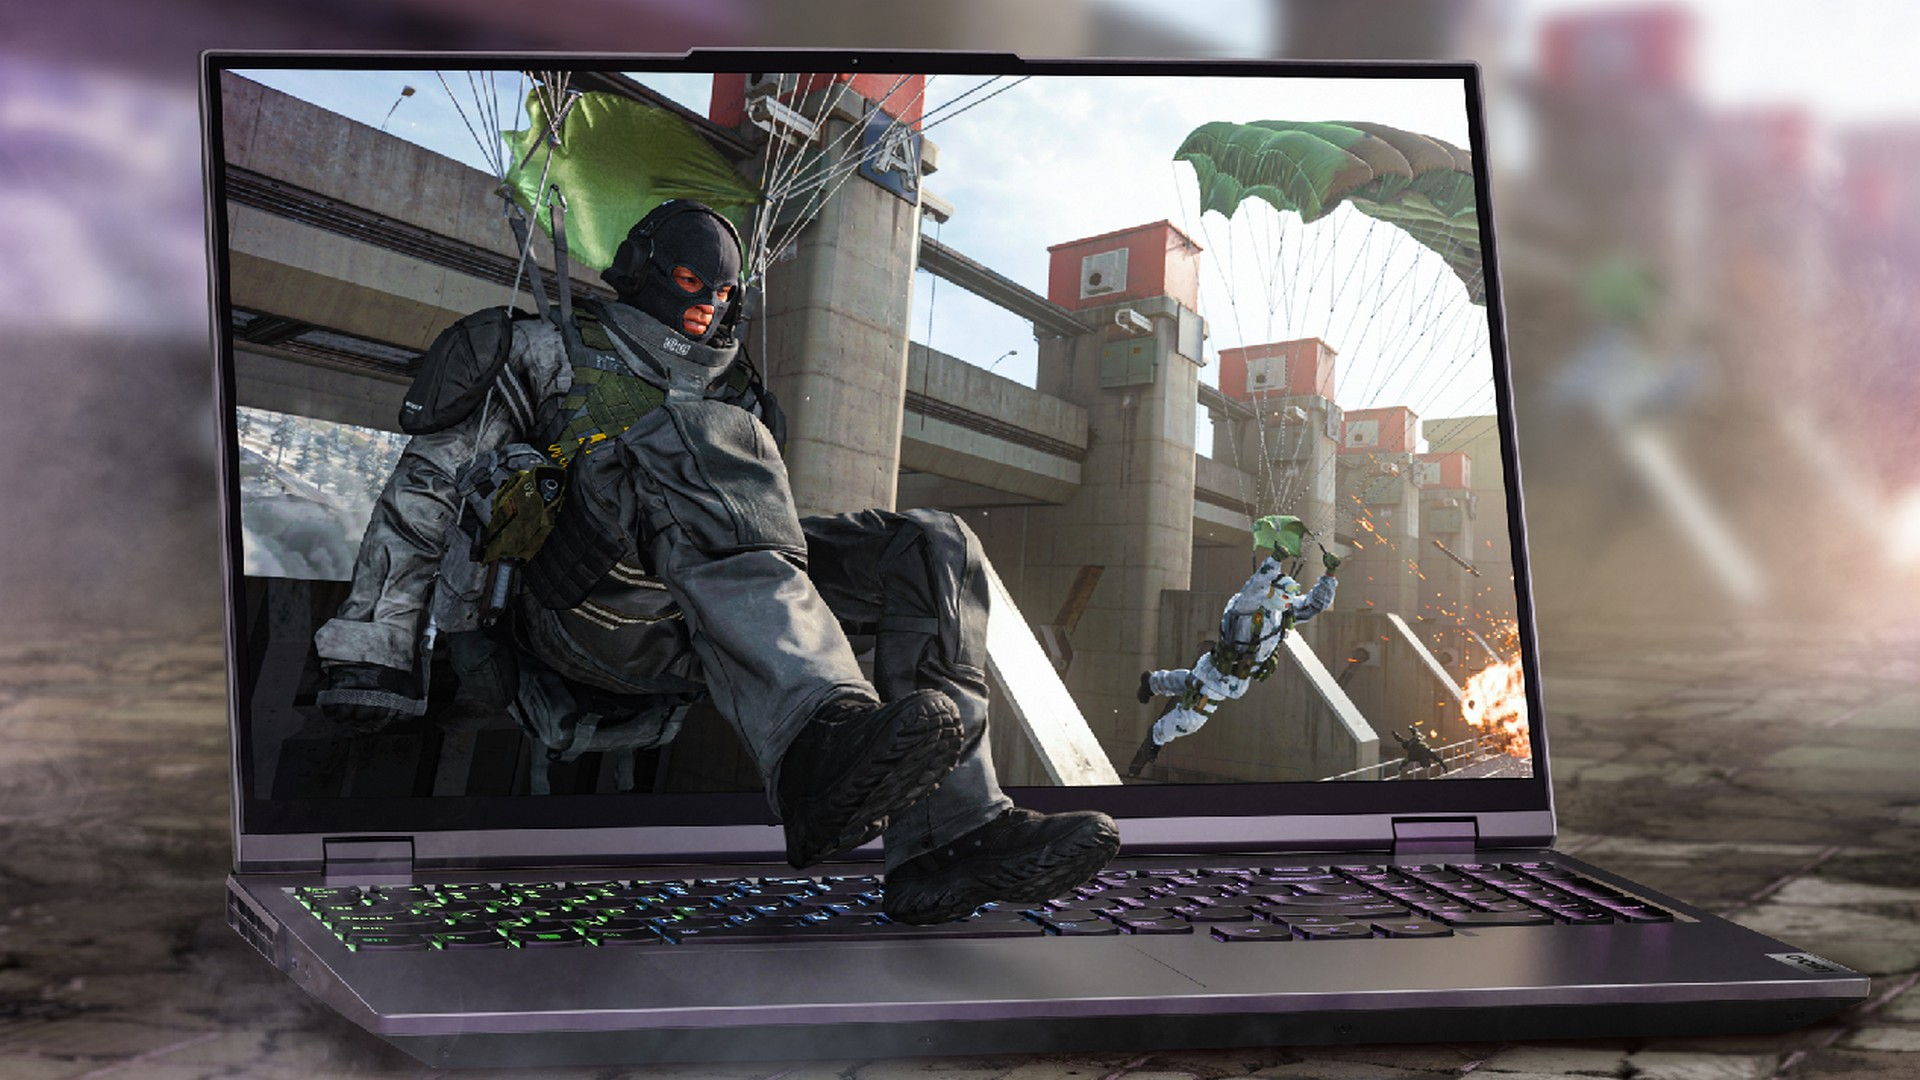 Introducing Lenovo Legion Gaming PCs with New Intel Core Processors and a High-Refresh Monitor for Enhanced Esports Experiences